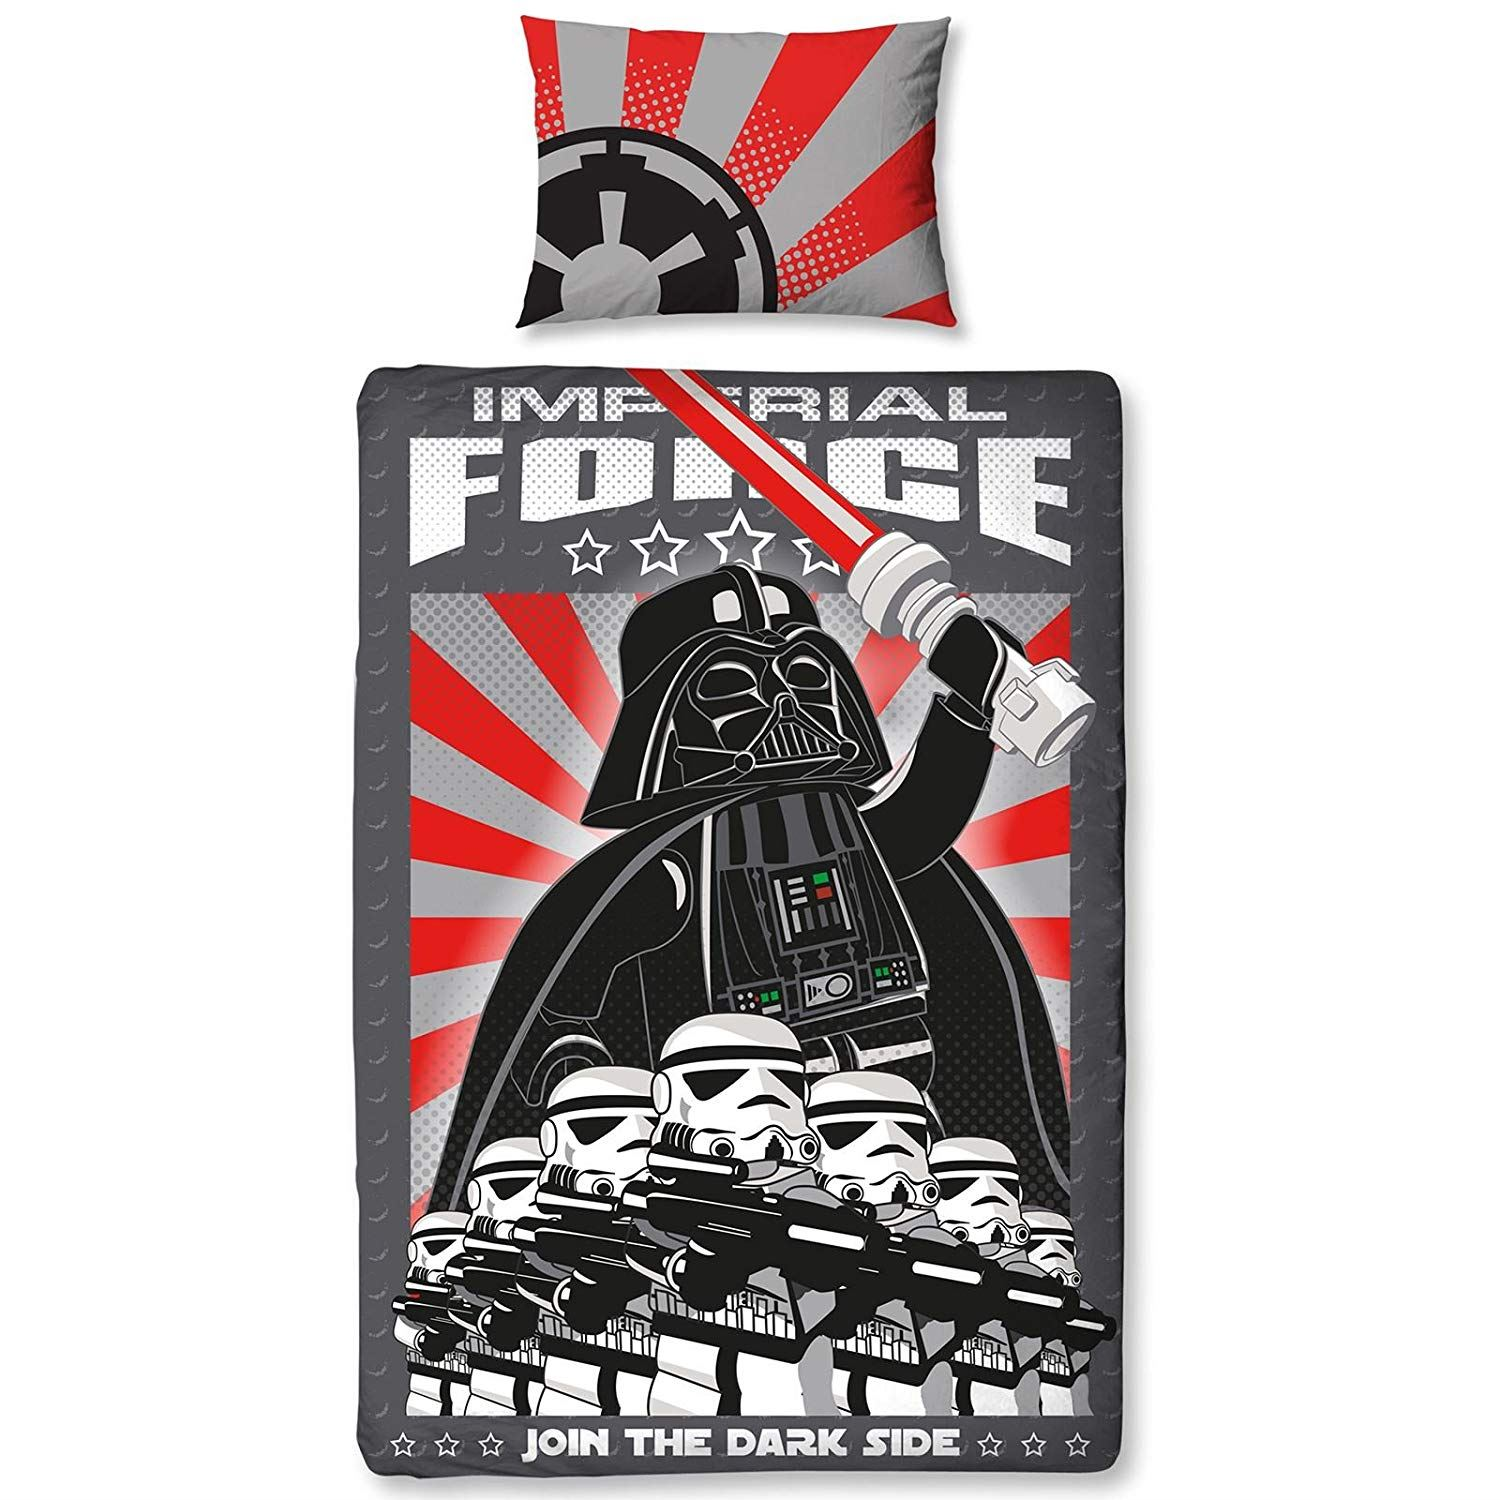 Official-Star-Wars-Licensed-Duvet-Covers-Single-Double-Jedi-Darth-Vader-Lego thumbnail 7